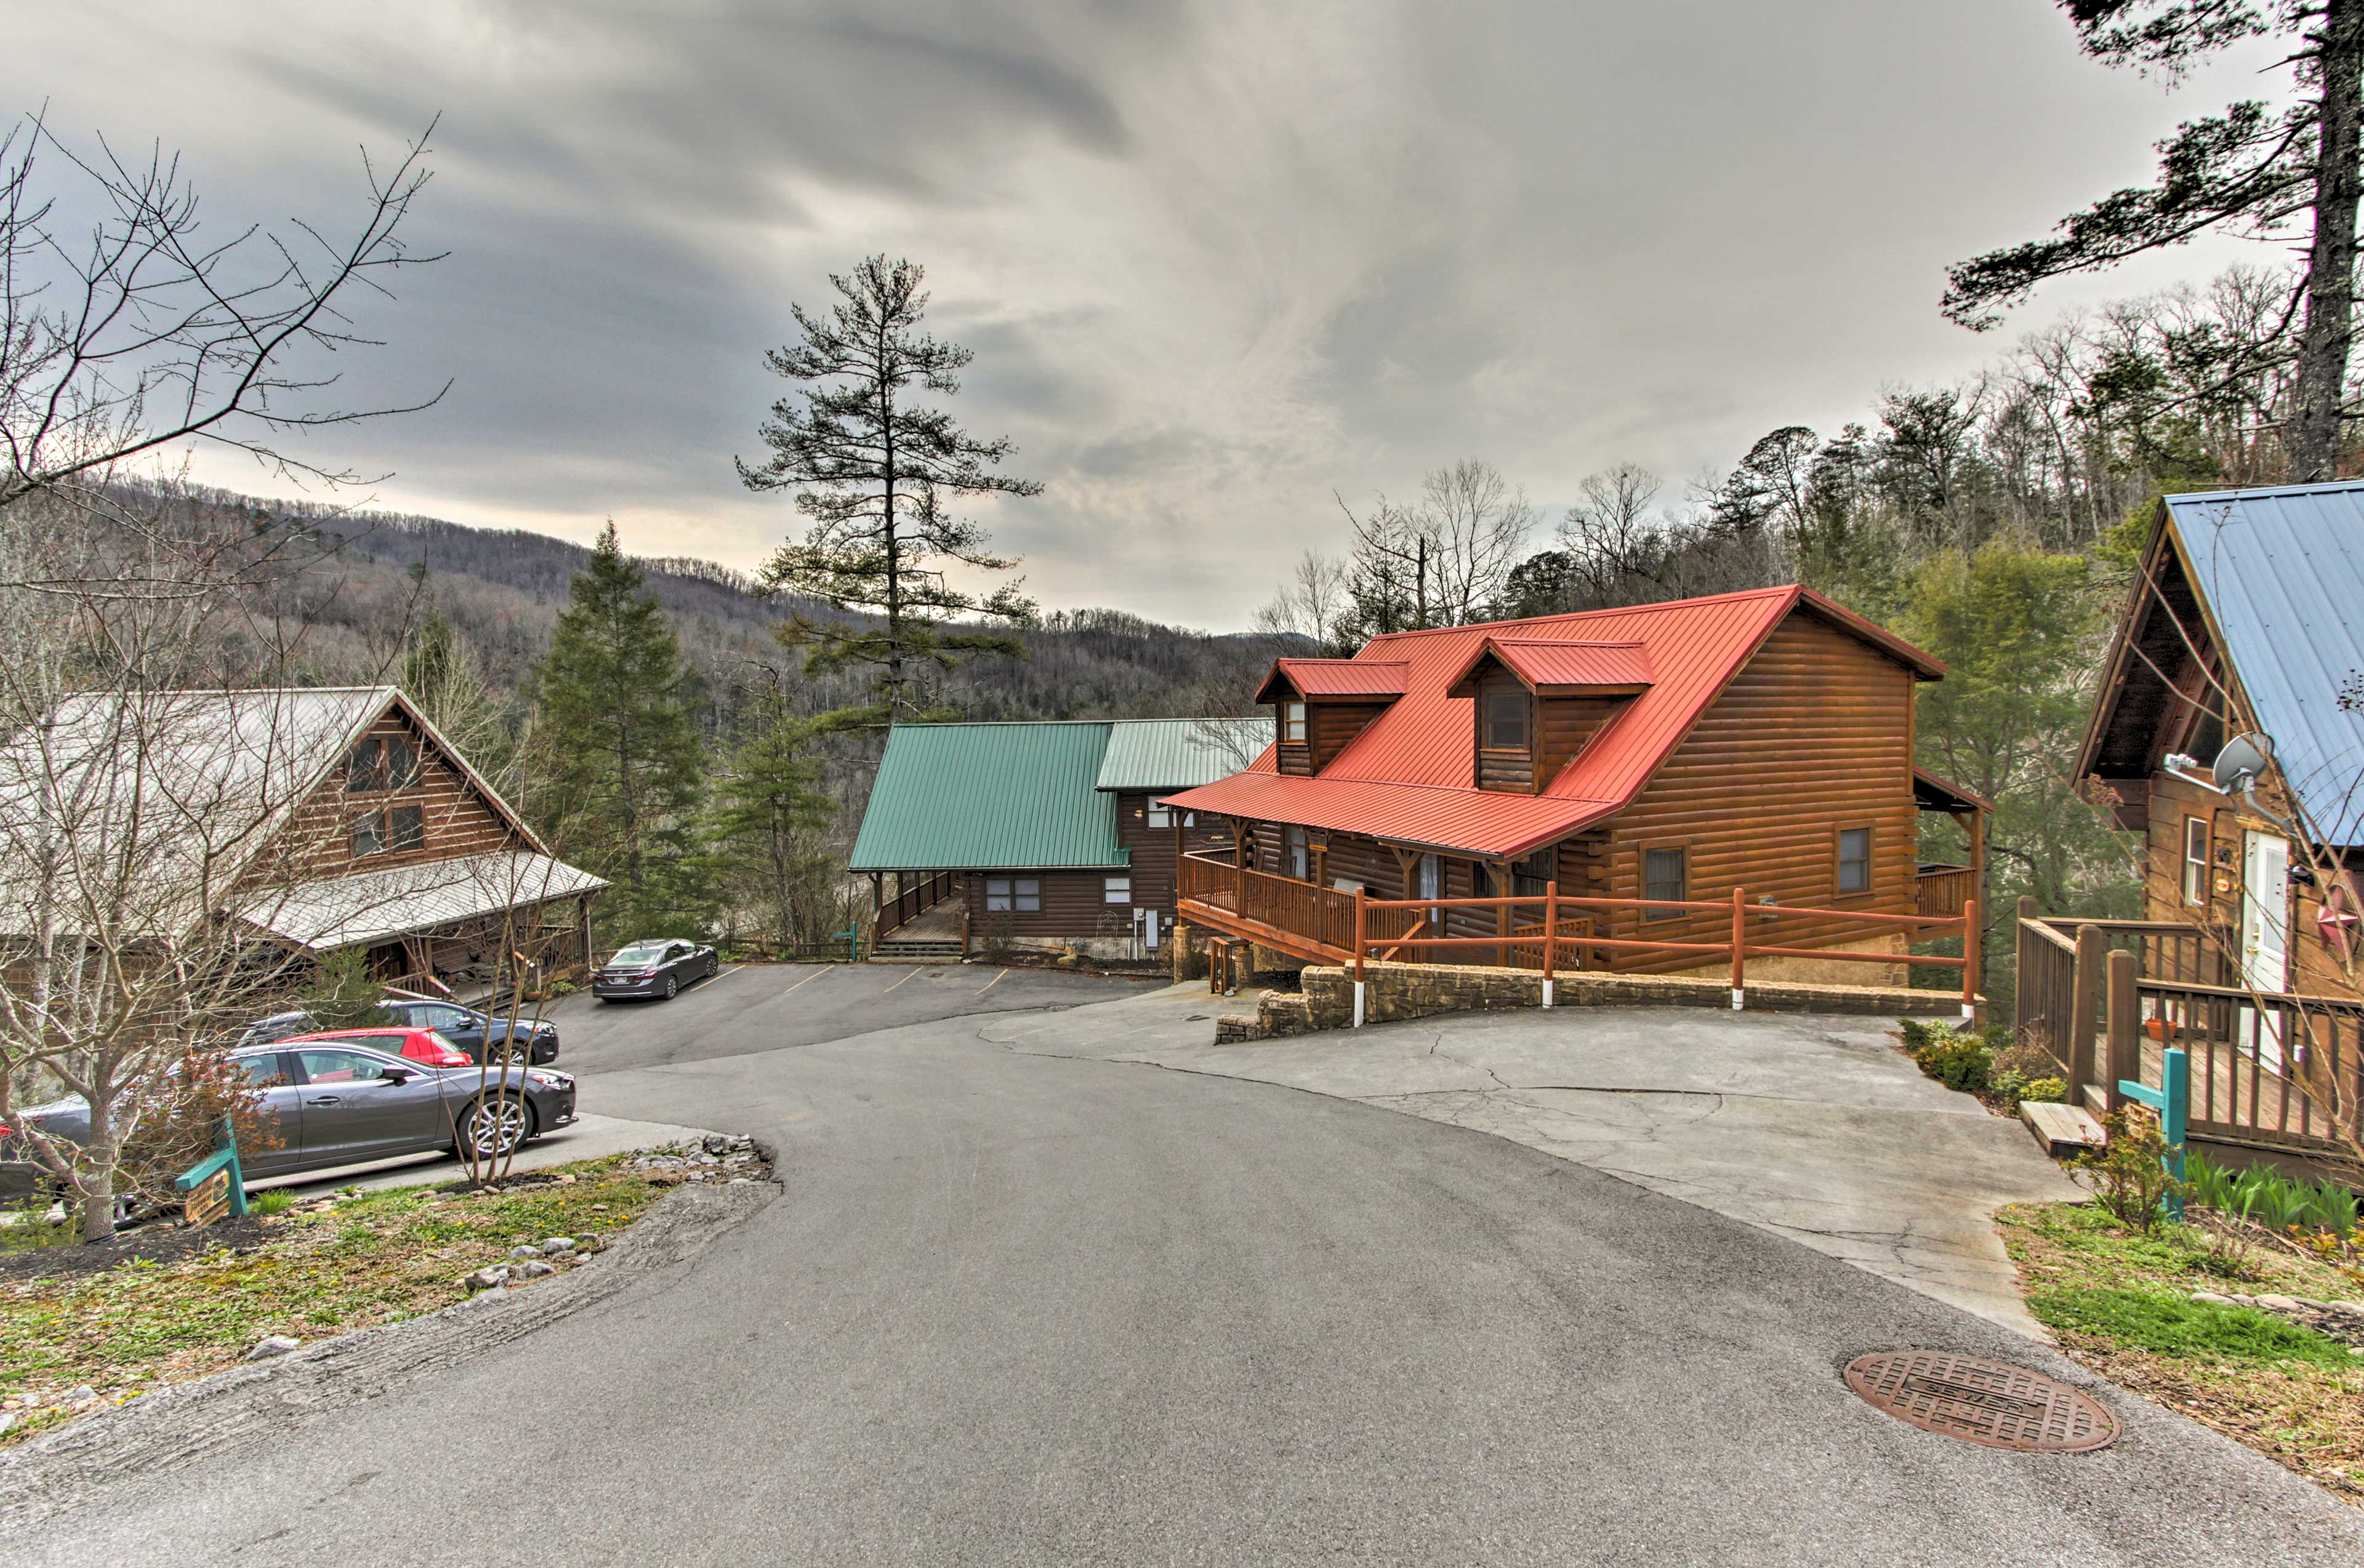 There's a newly built community clubhouse just down the street from this cabin.